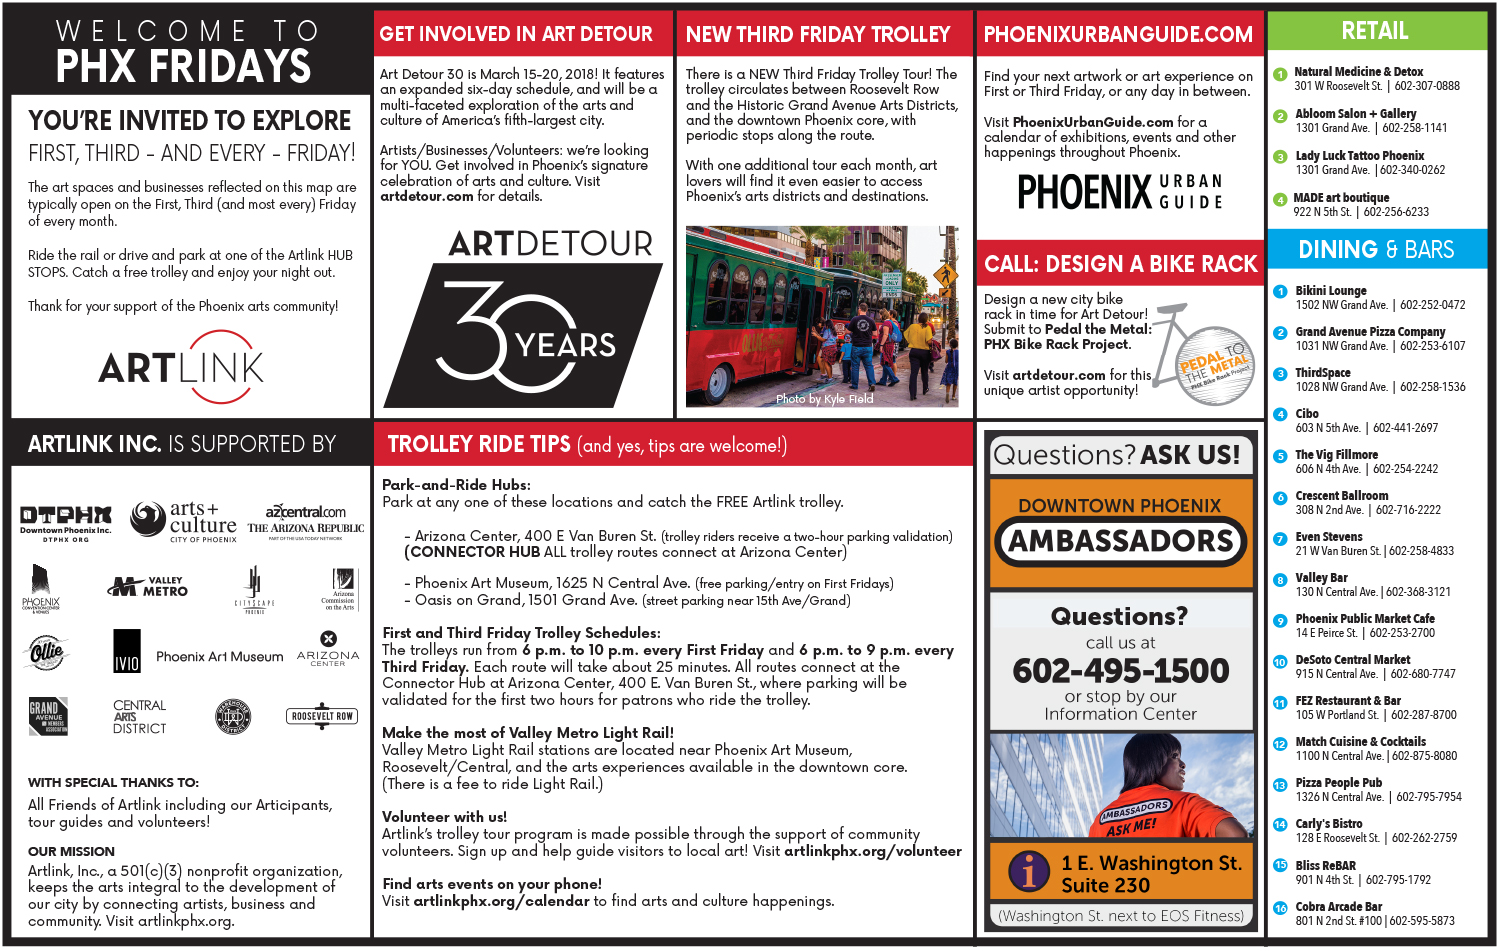 First Friday, Third Friday, PHX FRIDAYS Map